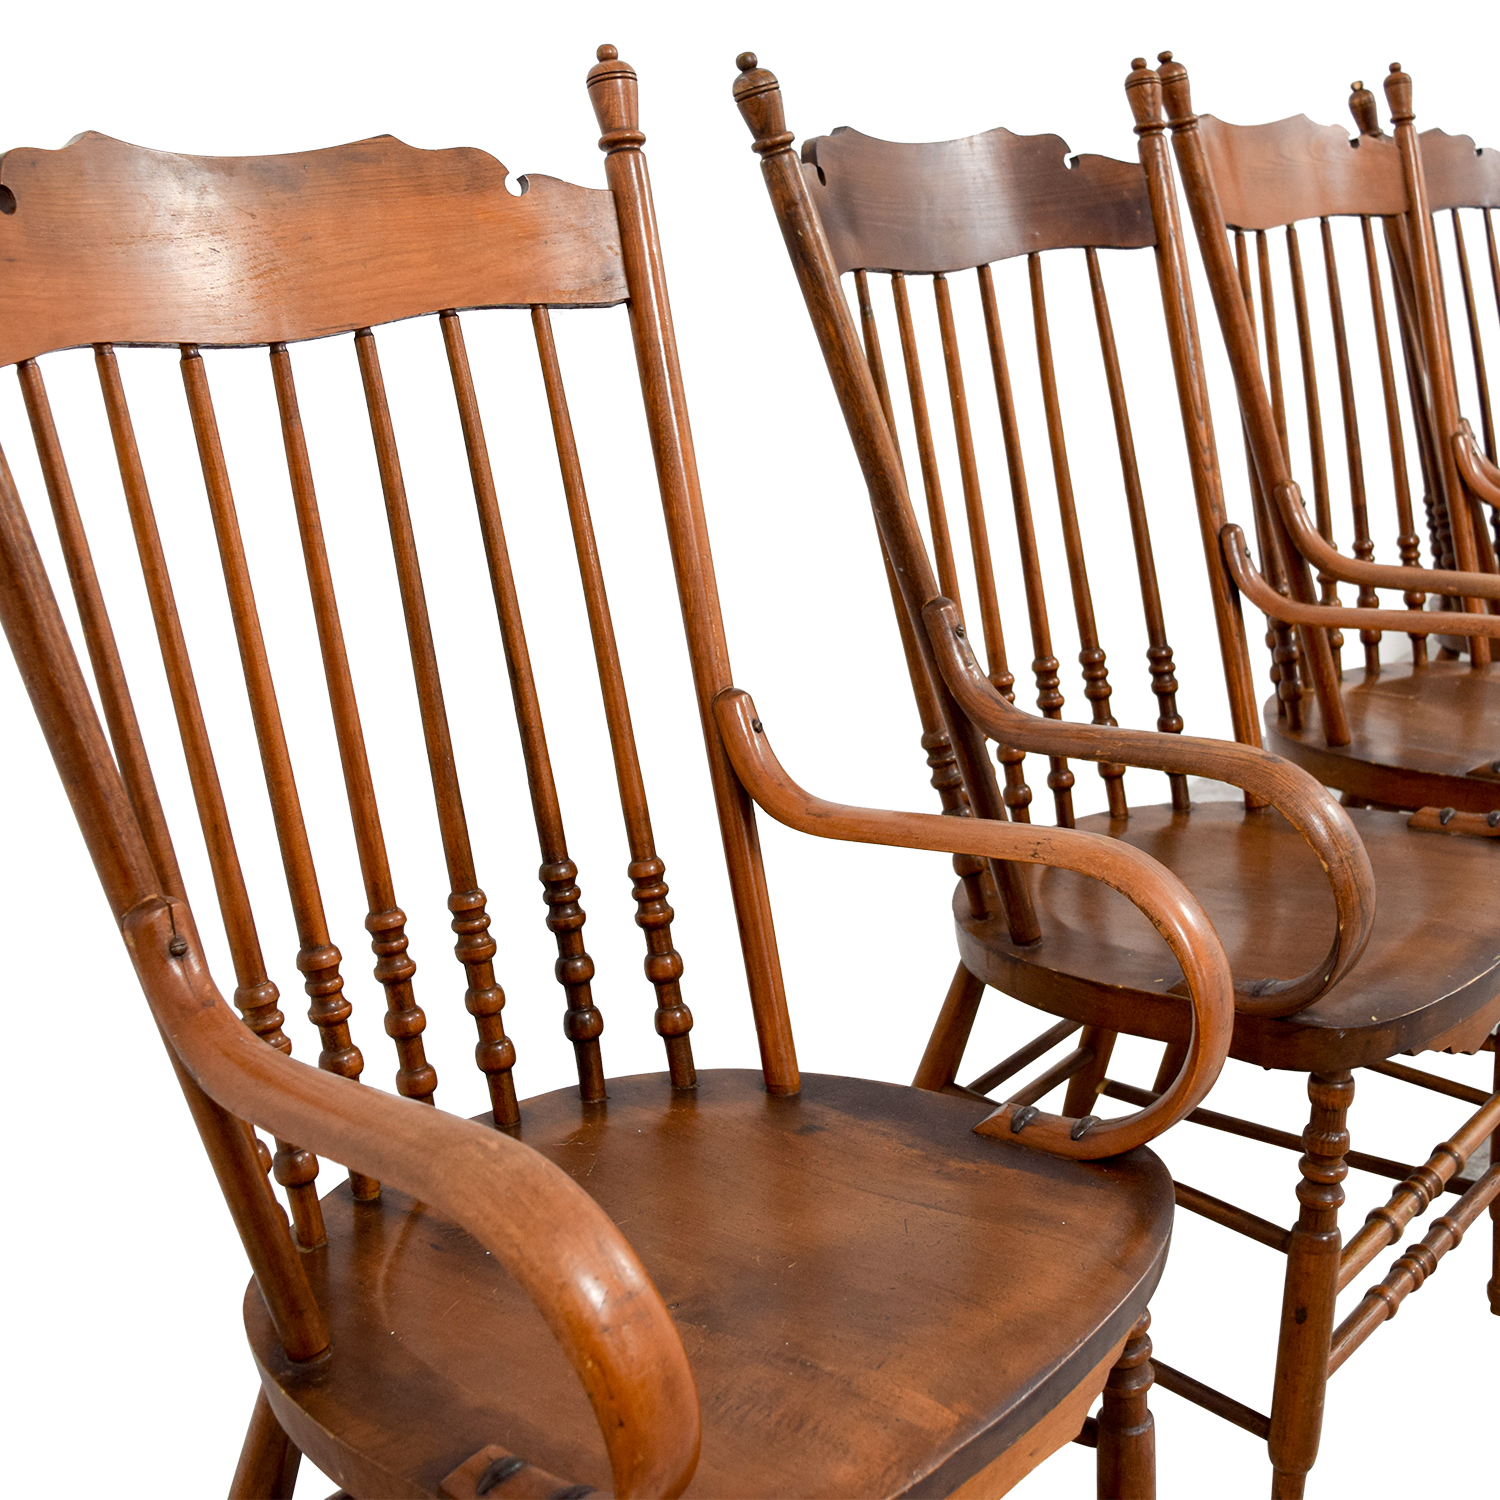 windsor chair with arms 89 off antique windsor chairs with arms chairs 22157 | buy antique windsor chairs with arms